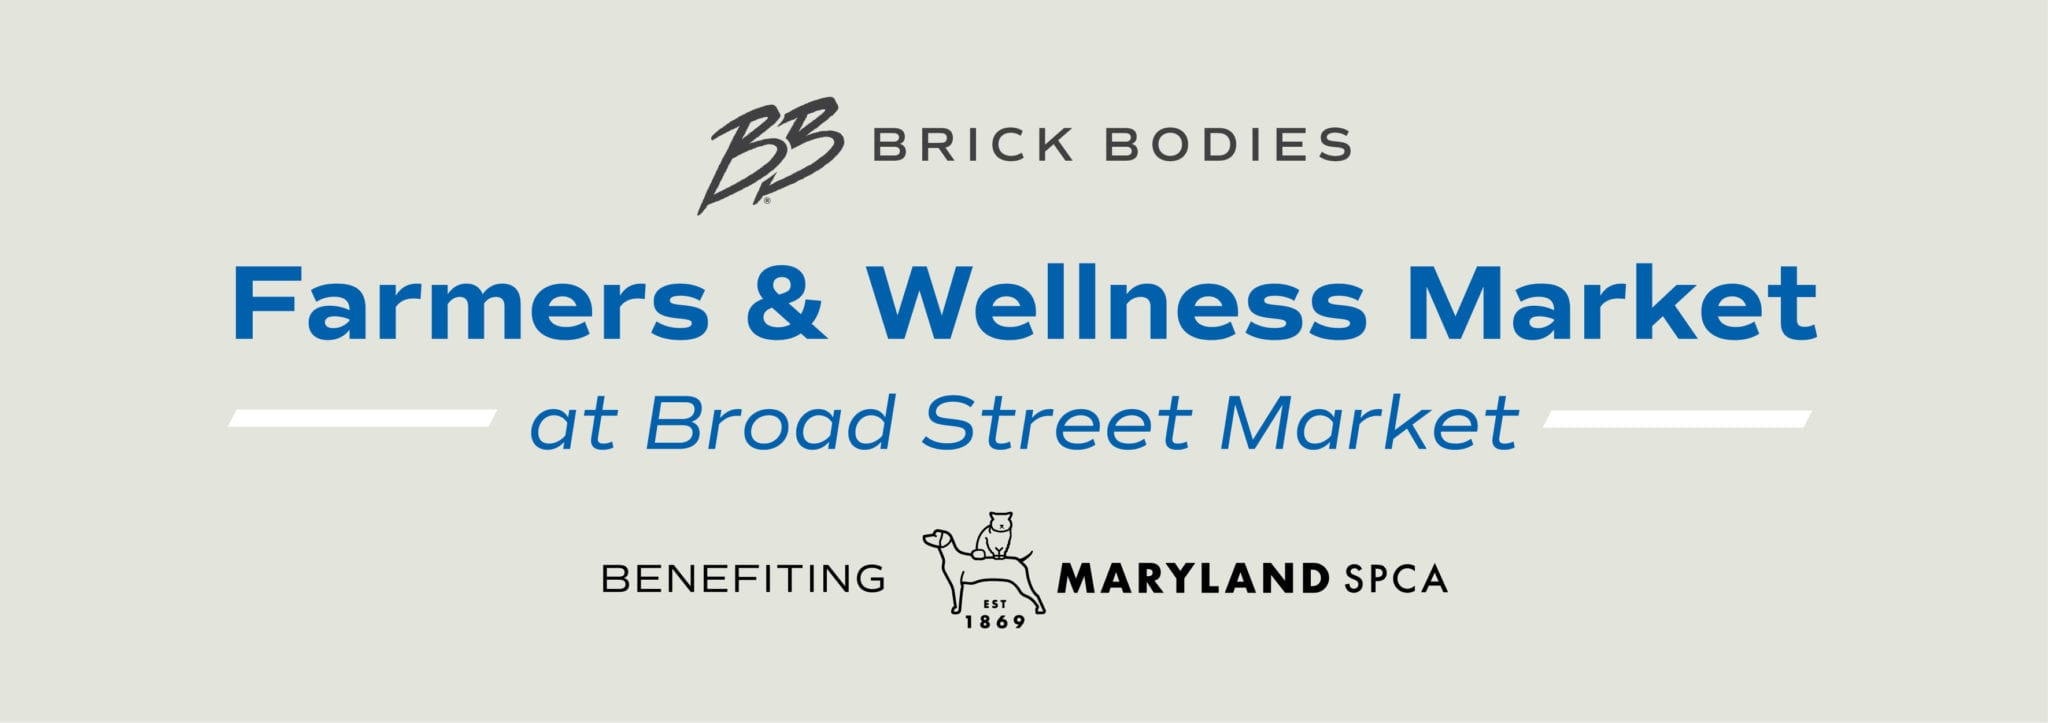 Brick Bodies Farmers and Wellness Market in Baltimore at Broad Street Market benefiting Maryland SPCA